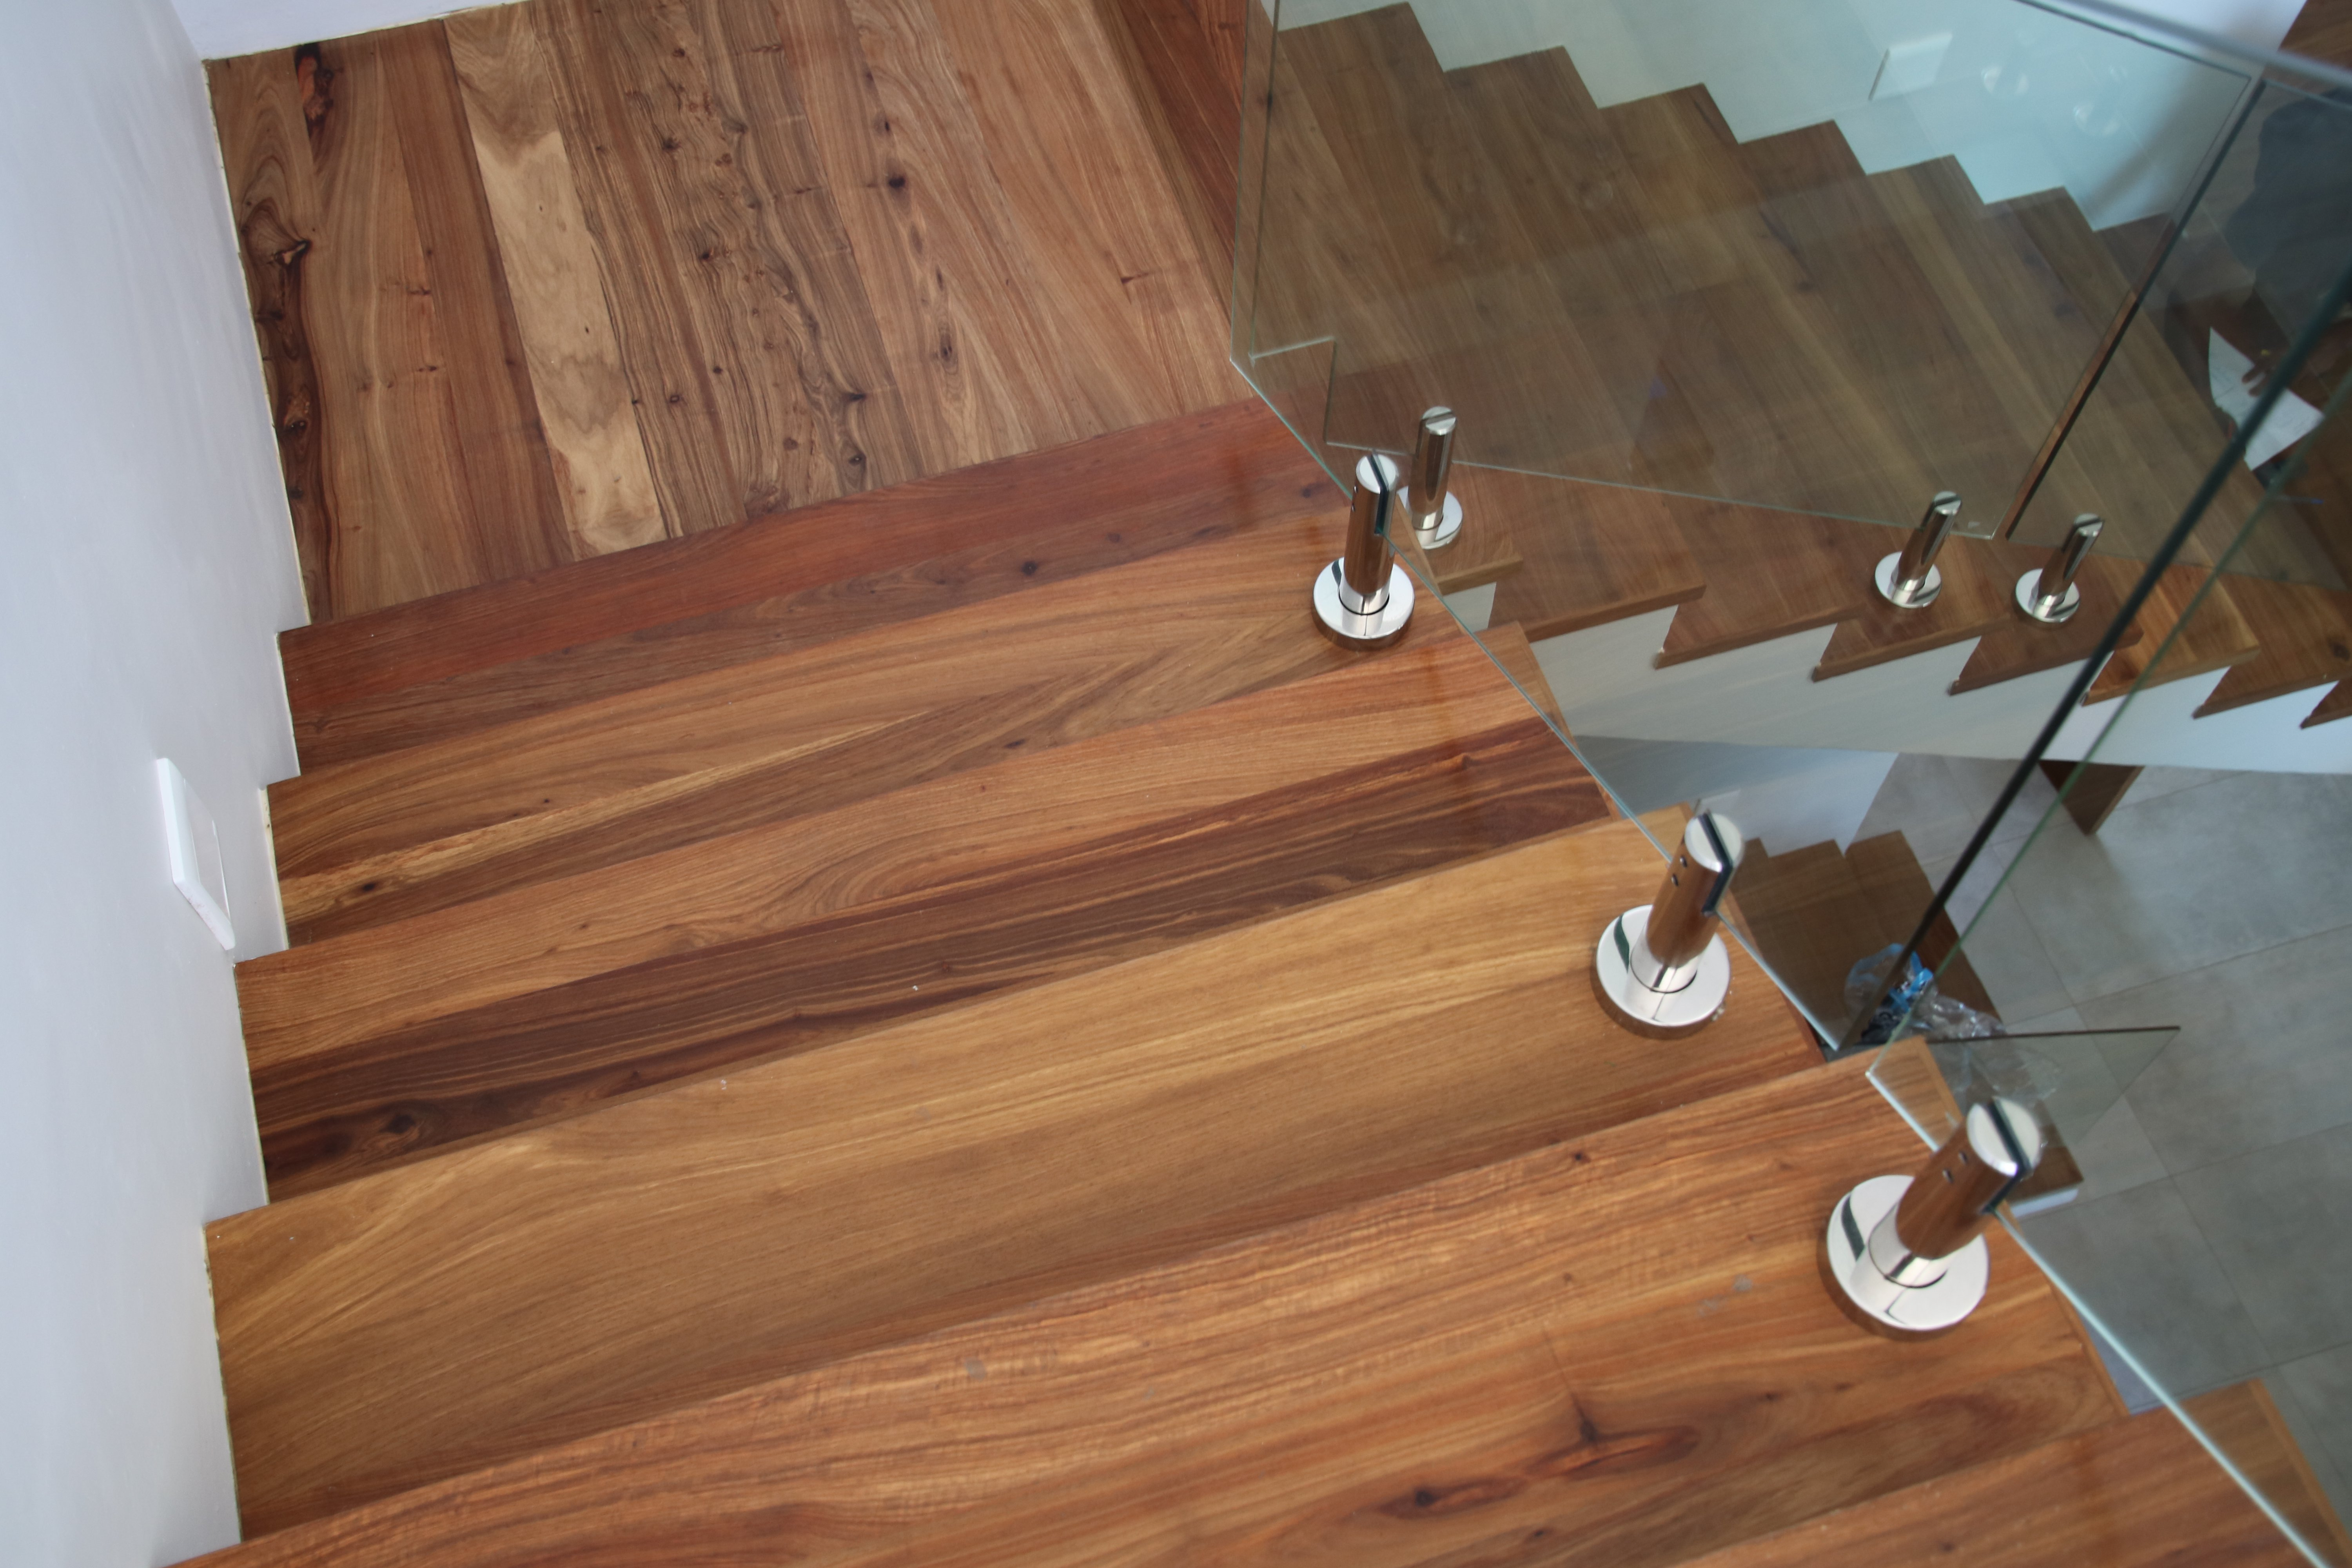 Kiaat stairtreads and balustrade